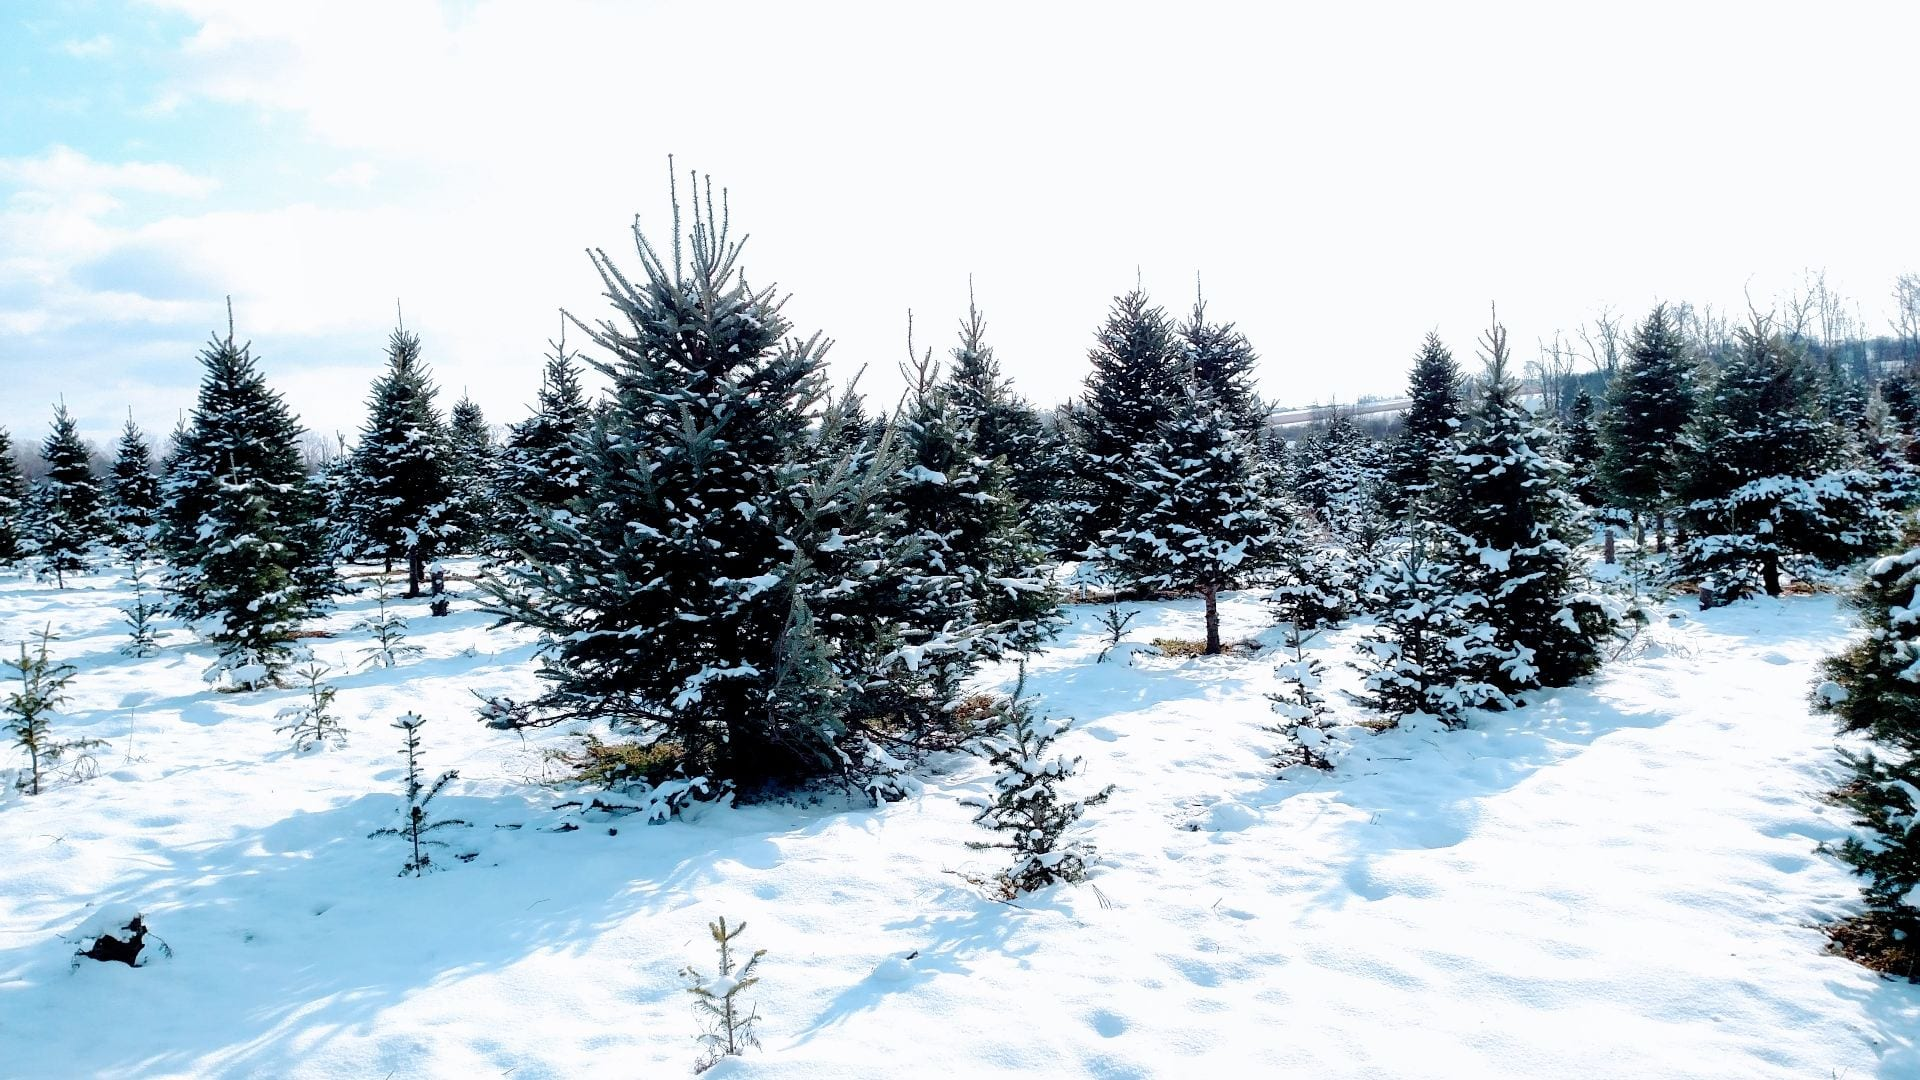 Christmas tree farm in winter